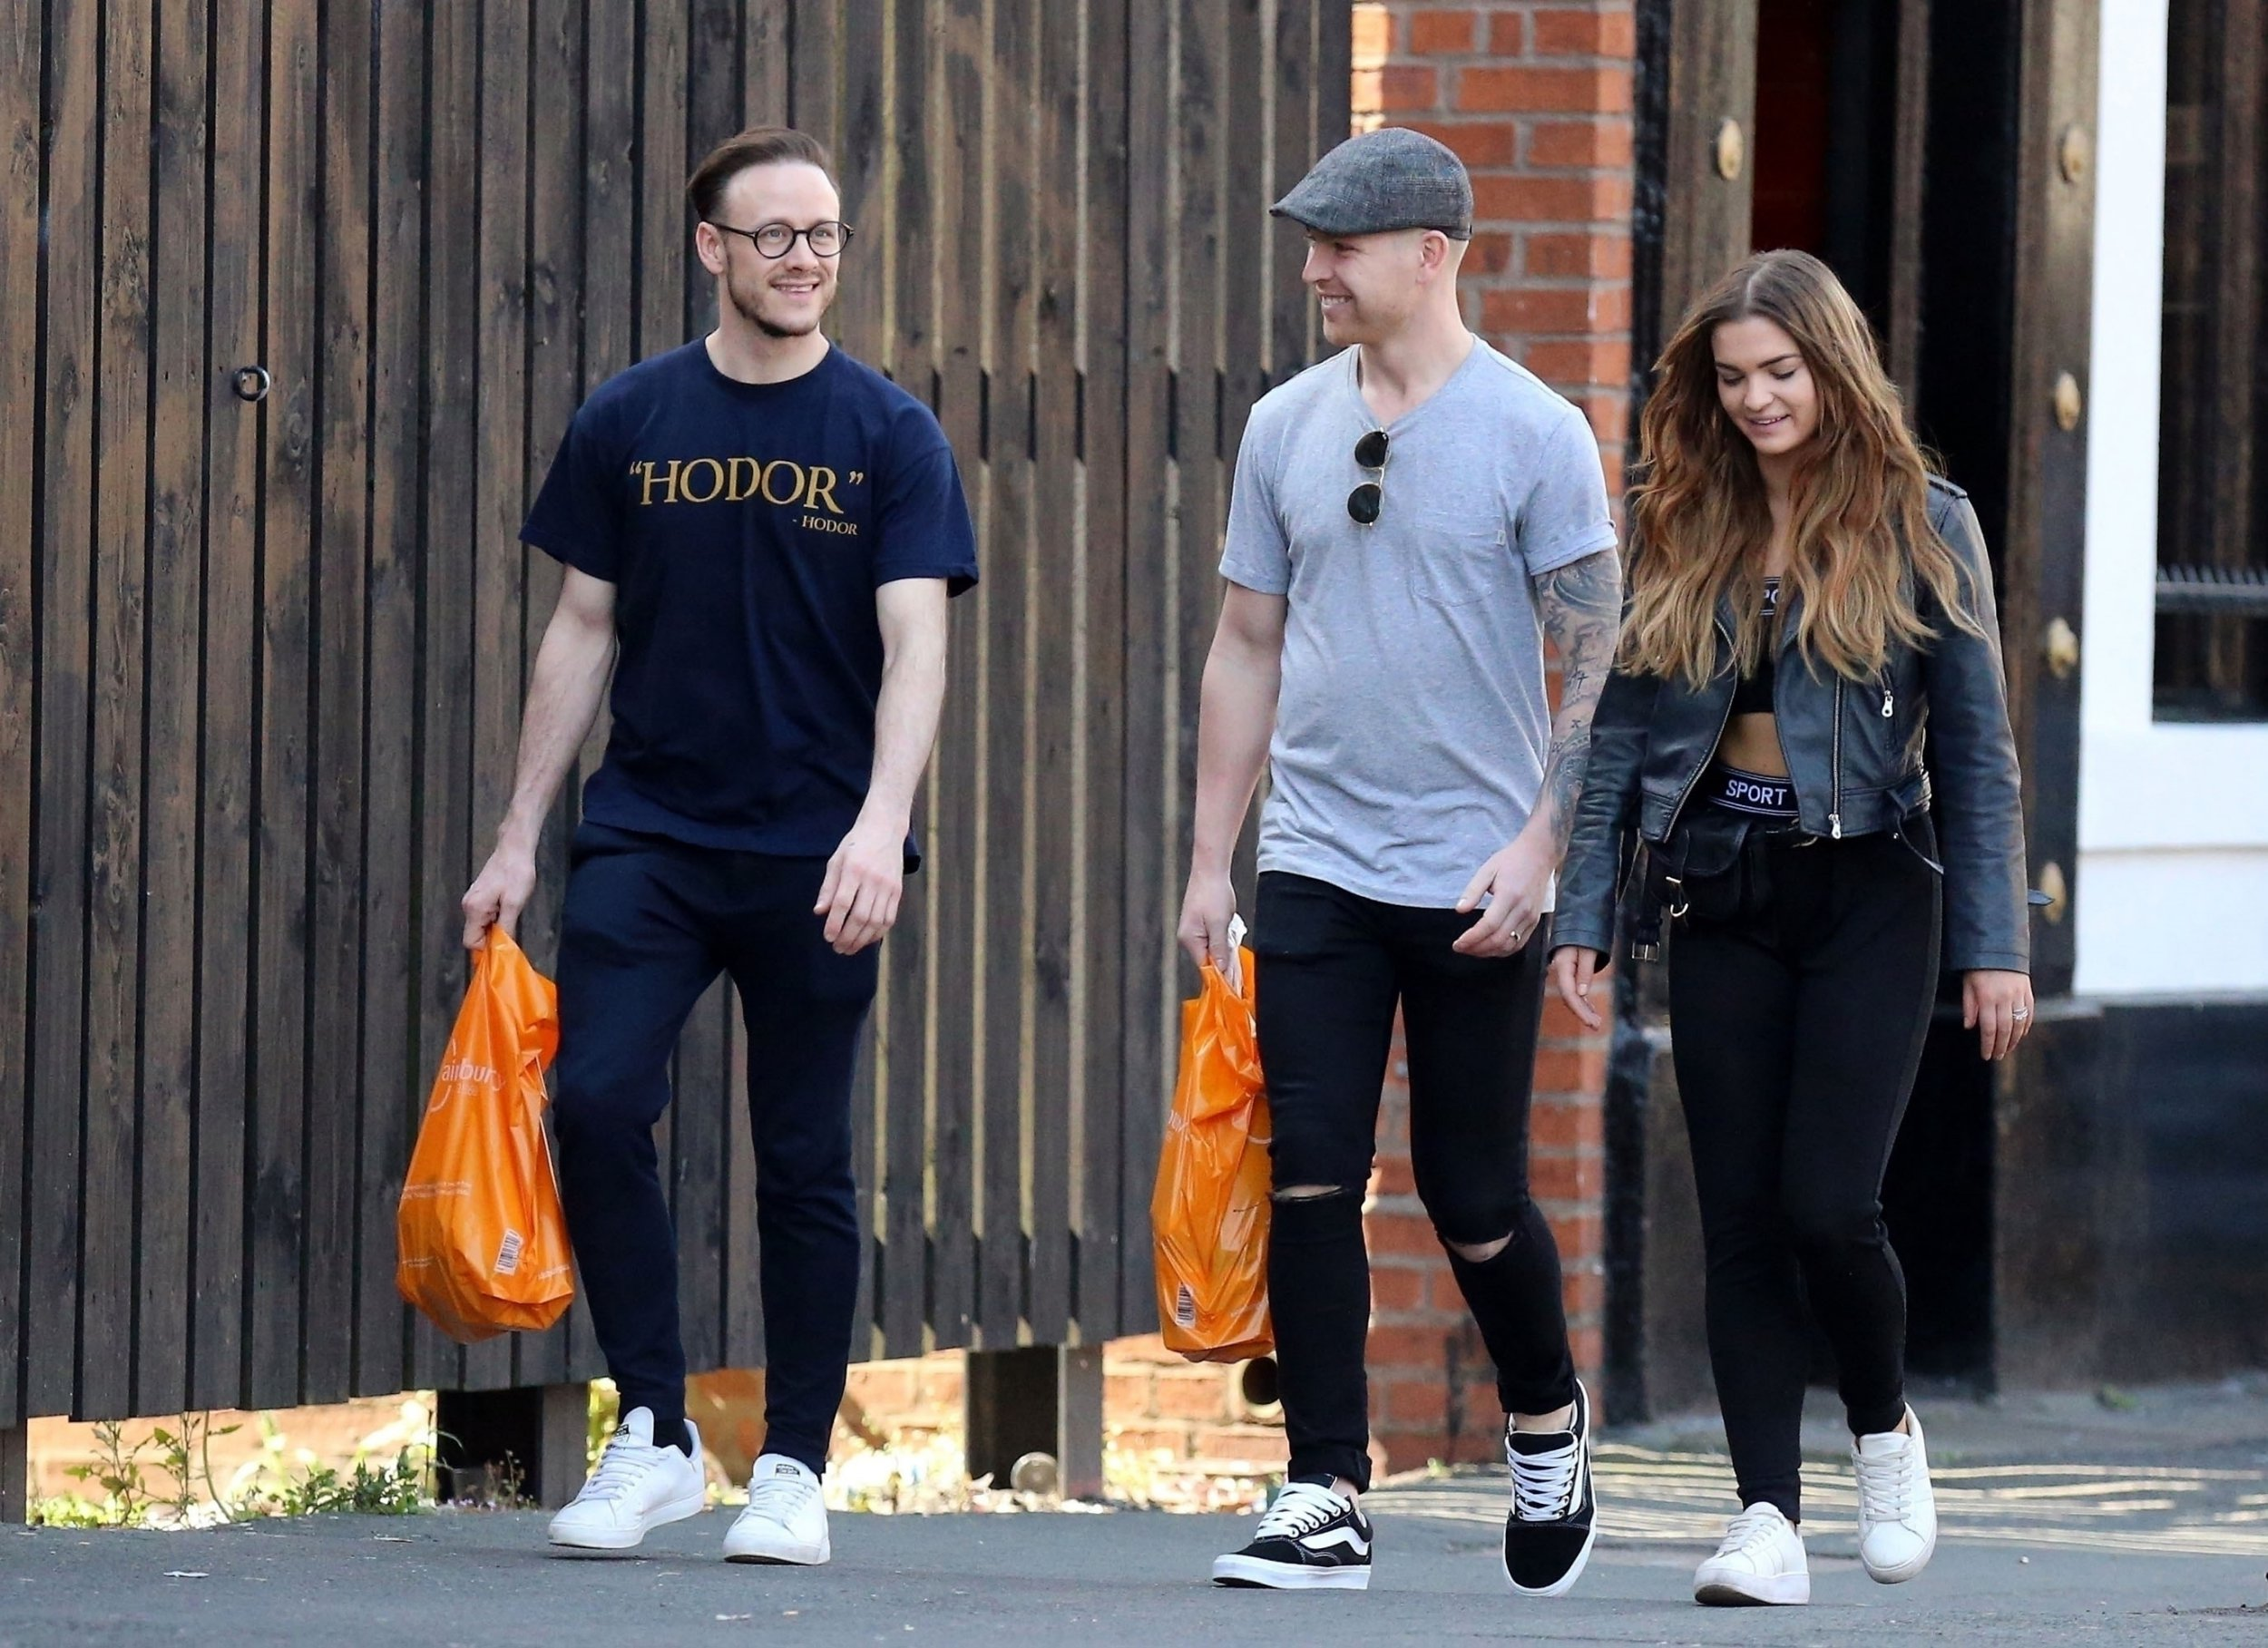 Kevin Clifton looks chuffed AF as he laughs with mates amid ex-wife's 'overdose' claims